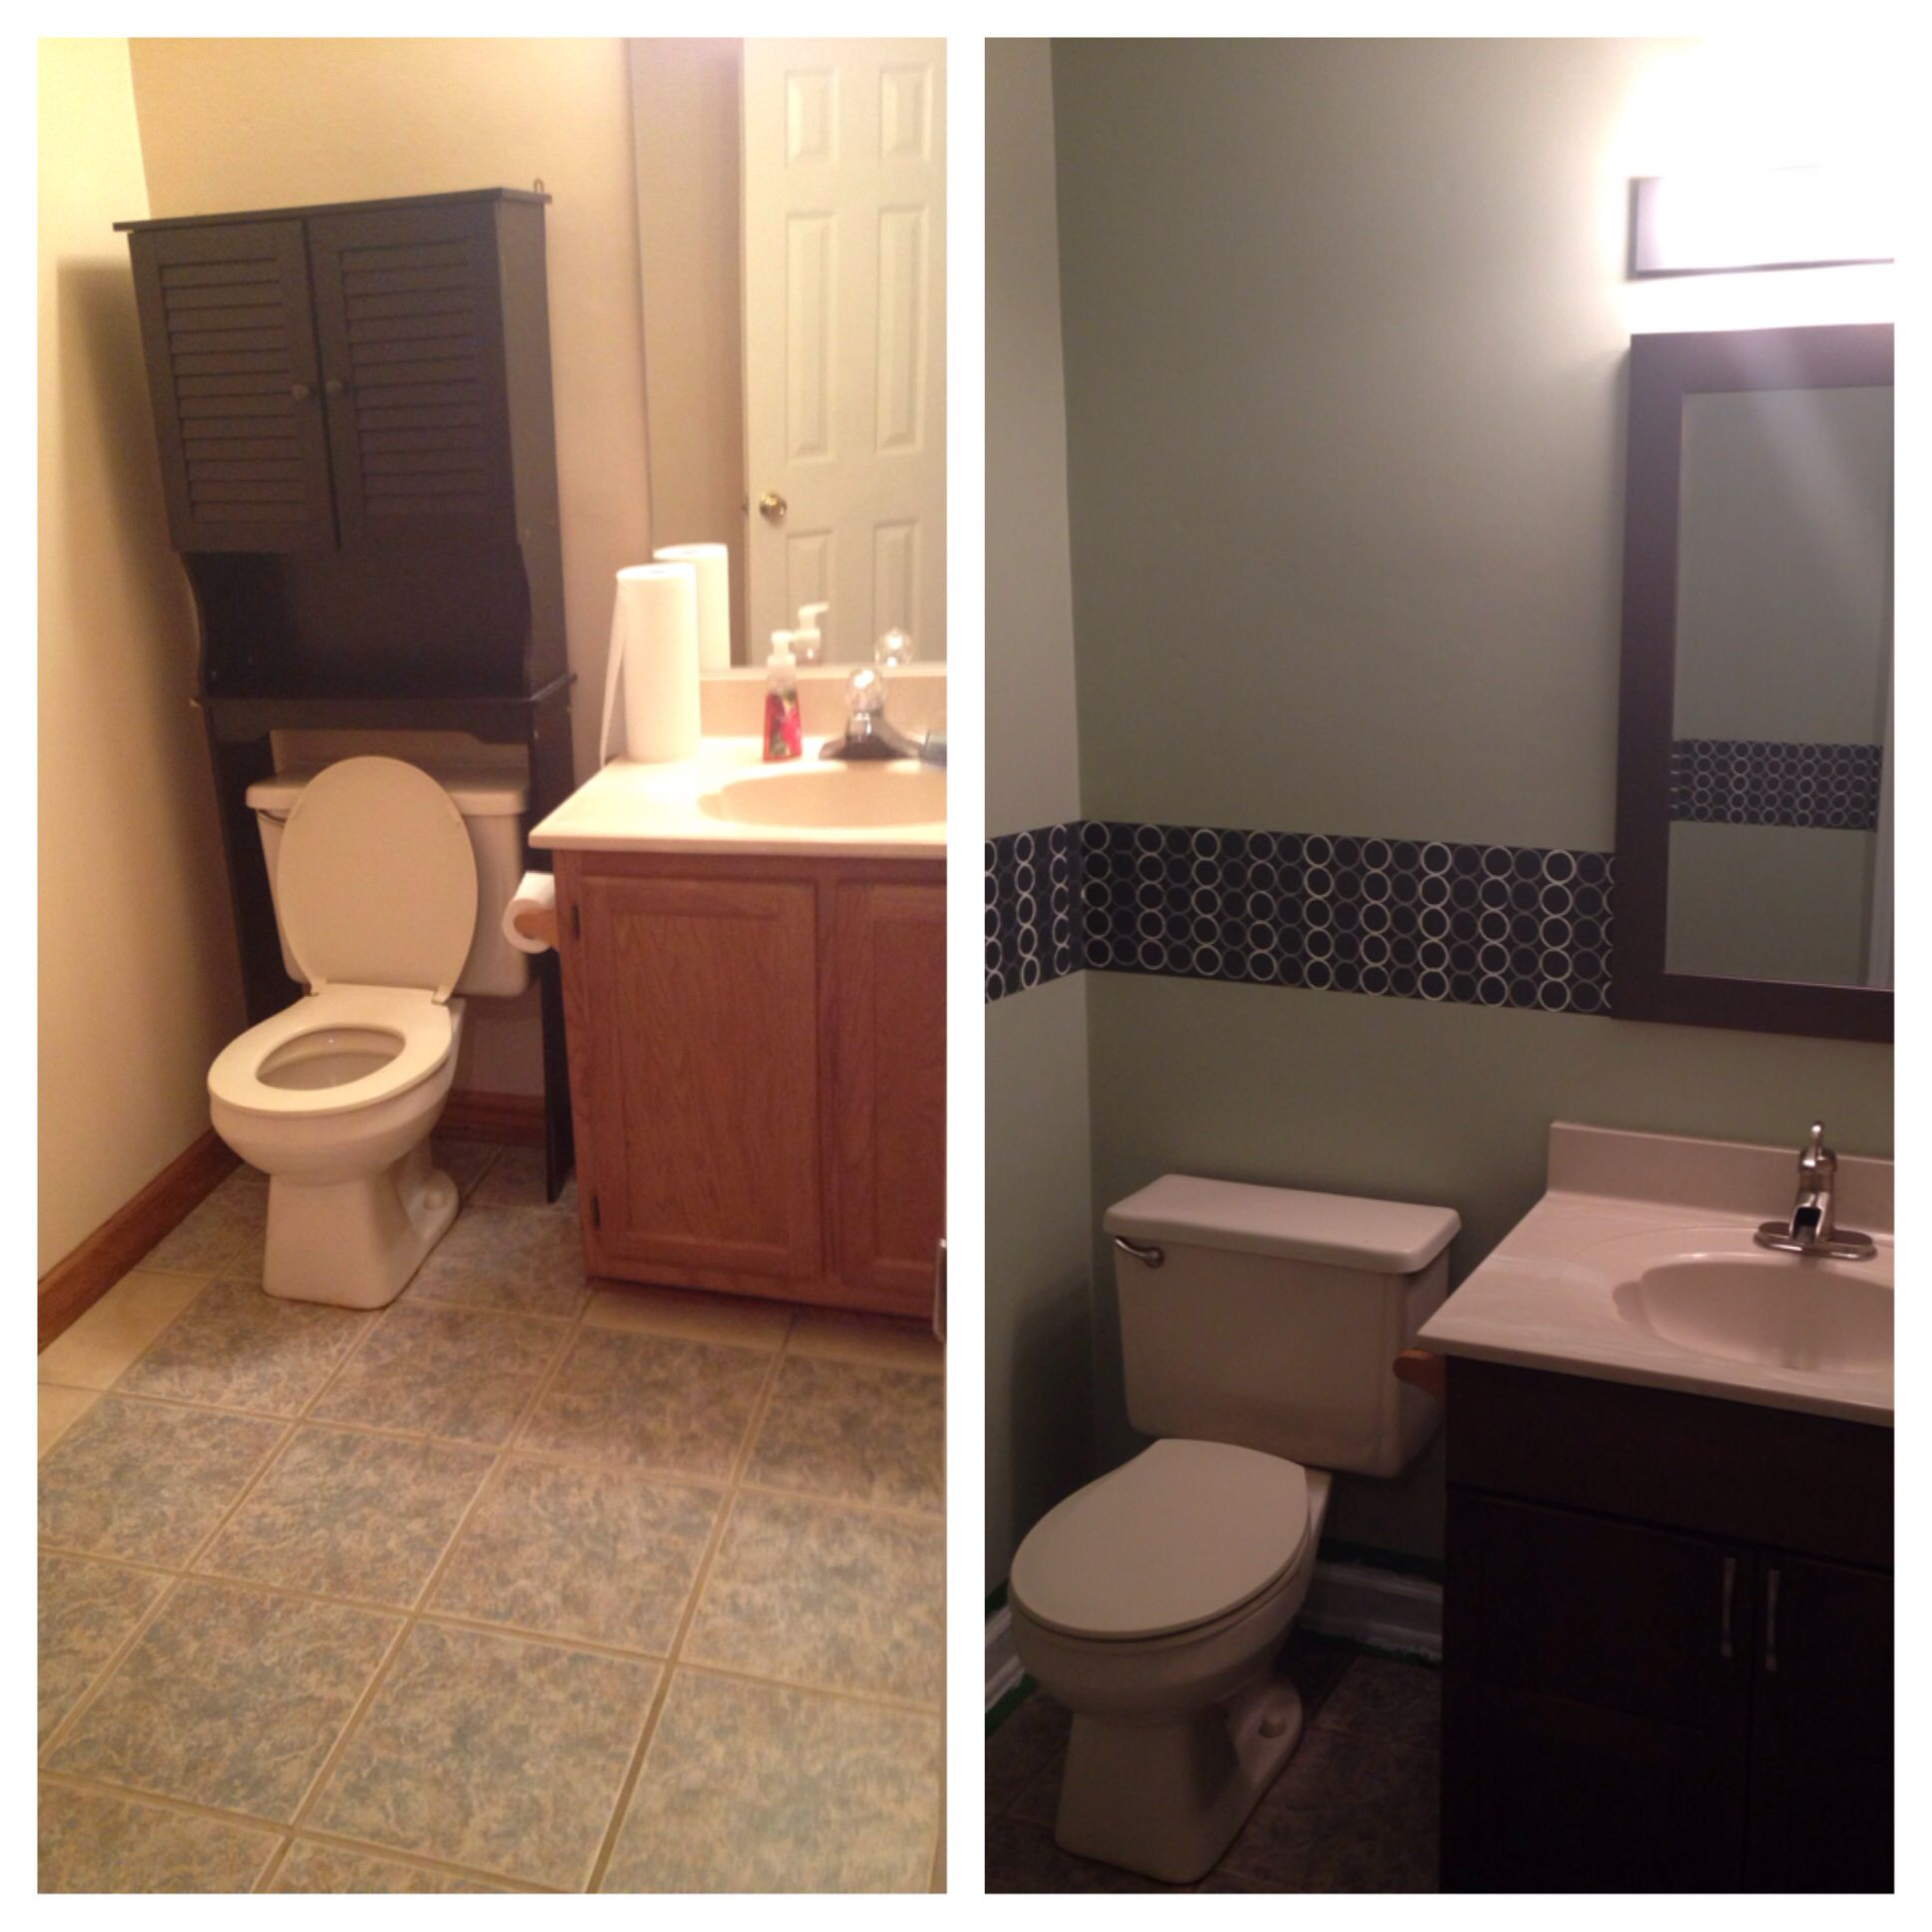 Before And After Half Bath The Circles Were Painted On